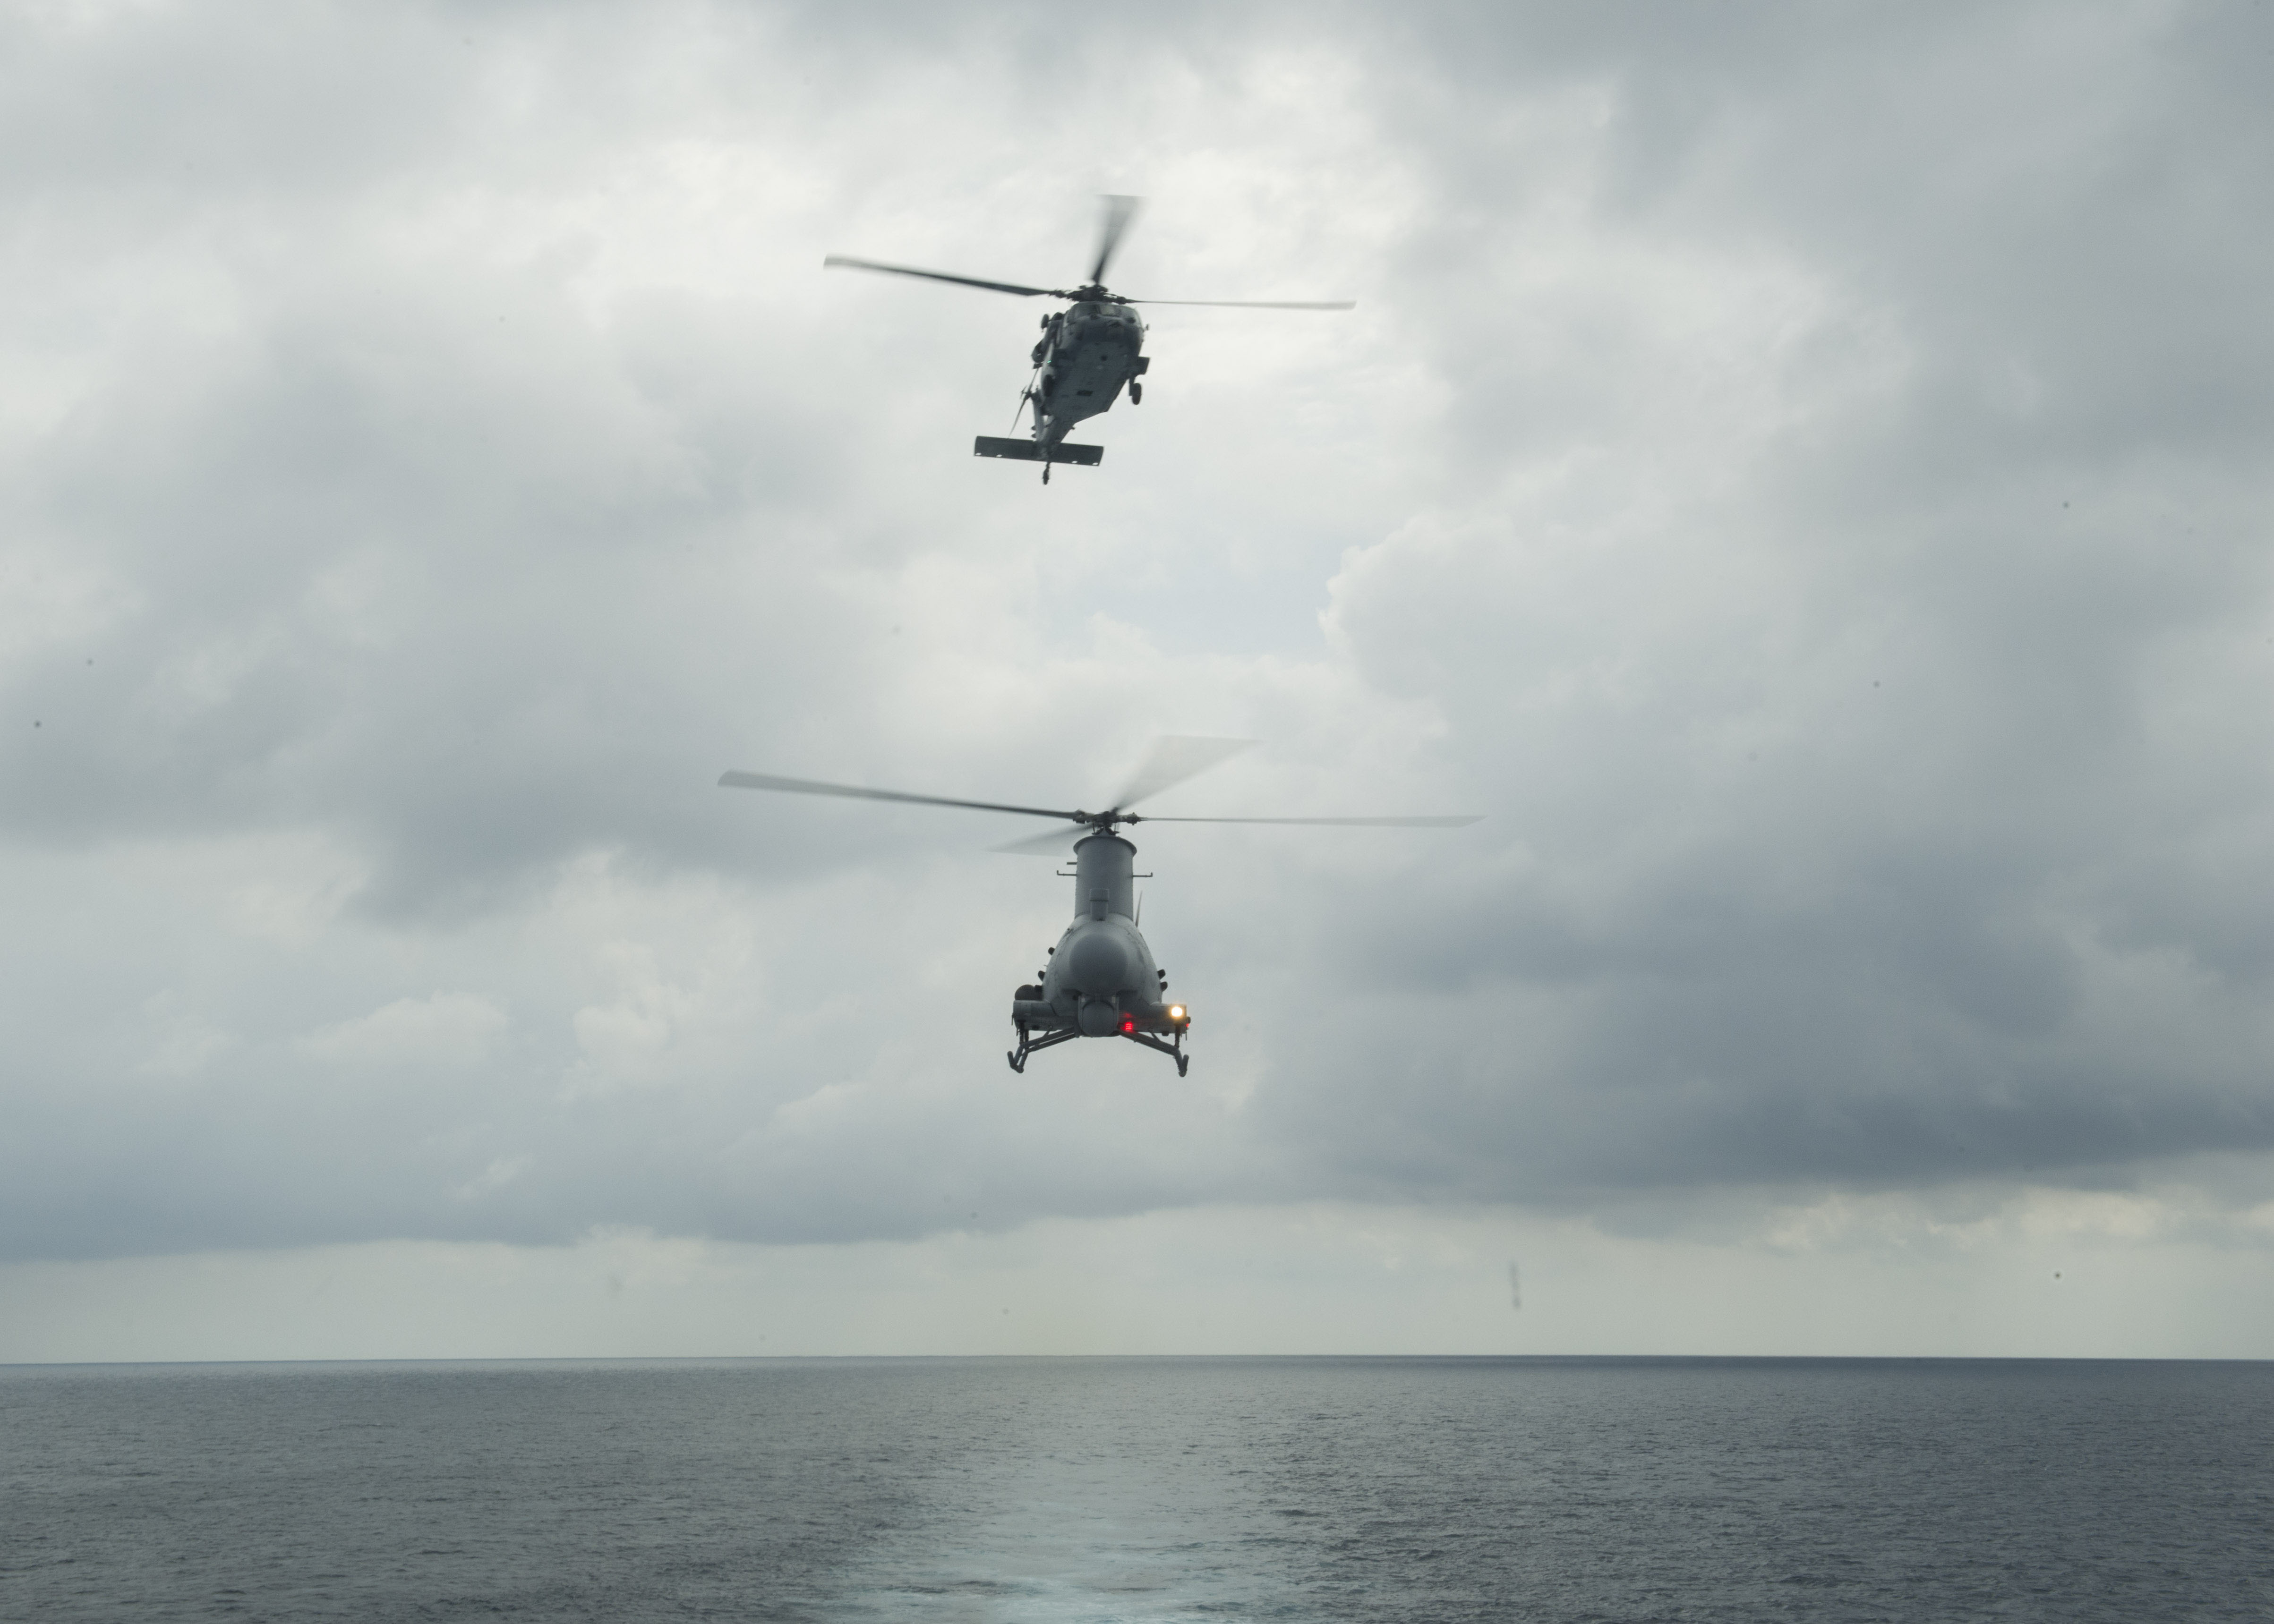 An MH-60S Sea Hawk helicopter, top, and an MQ-8B Fire Scout unmanned helicopter make their approach towards the littoral combat ship USS Coronado (LCS 4) during flight operations. US Navy photo.